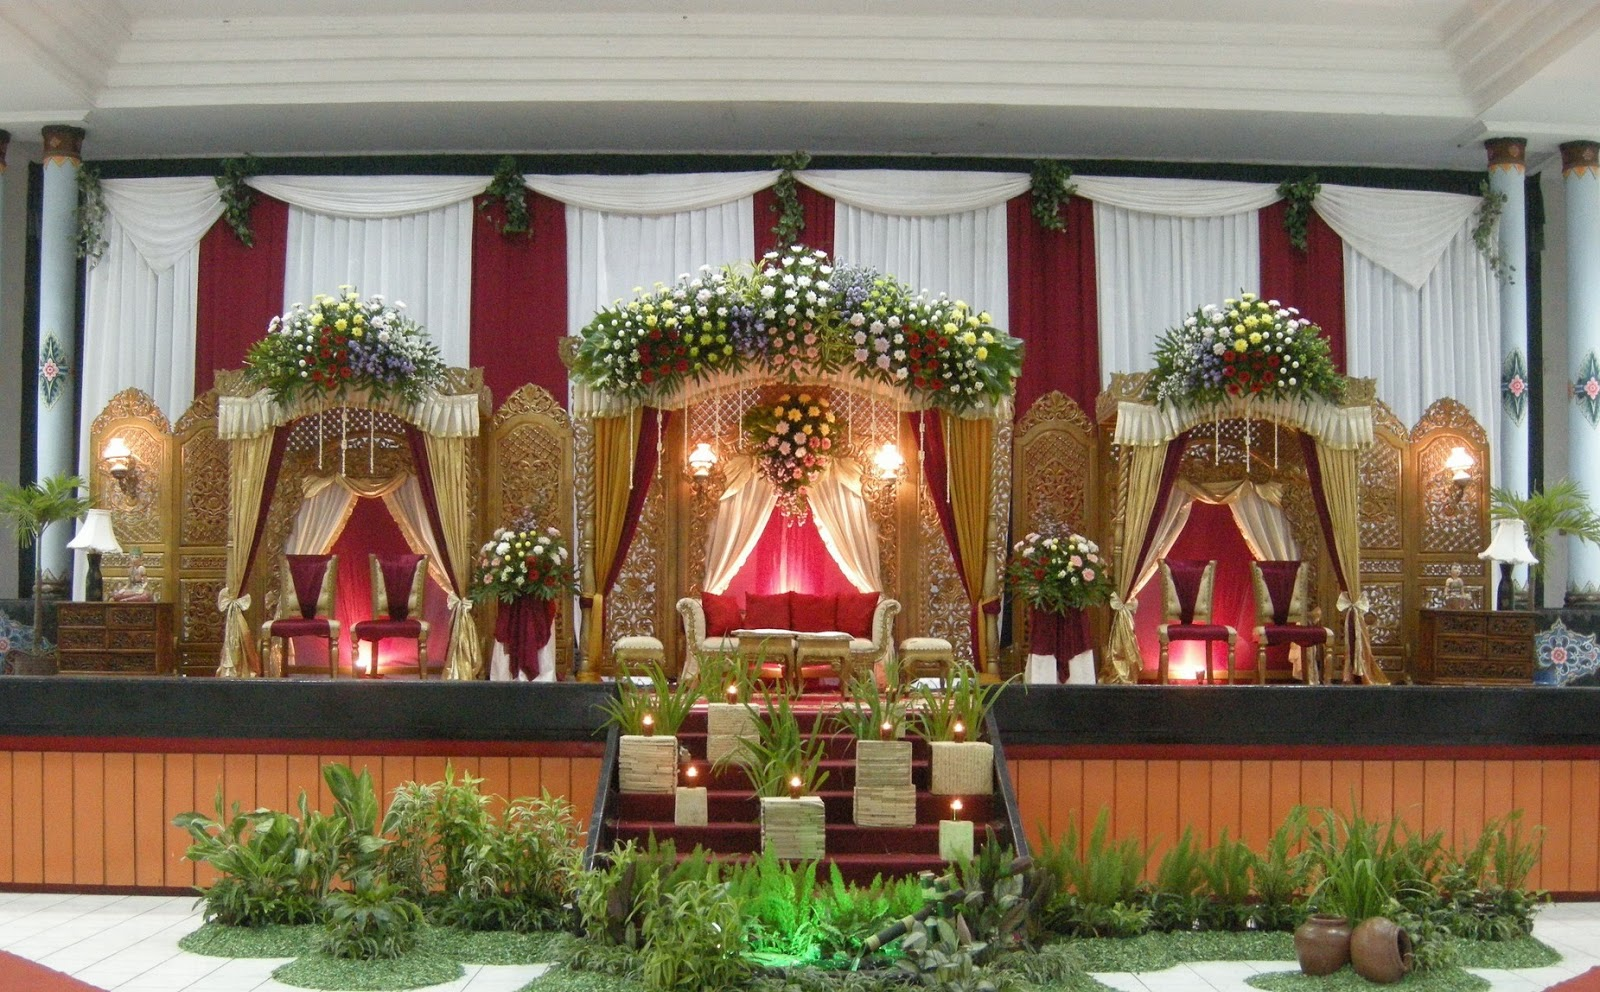 Wedding decorations oktober 2013 bejana wedding service junglespirit Choice Image